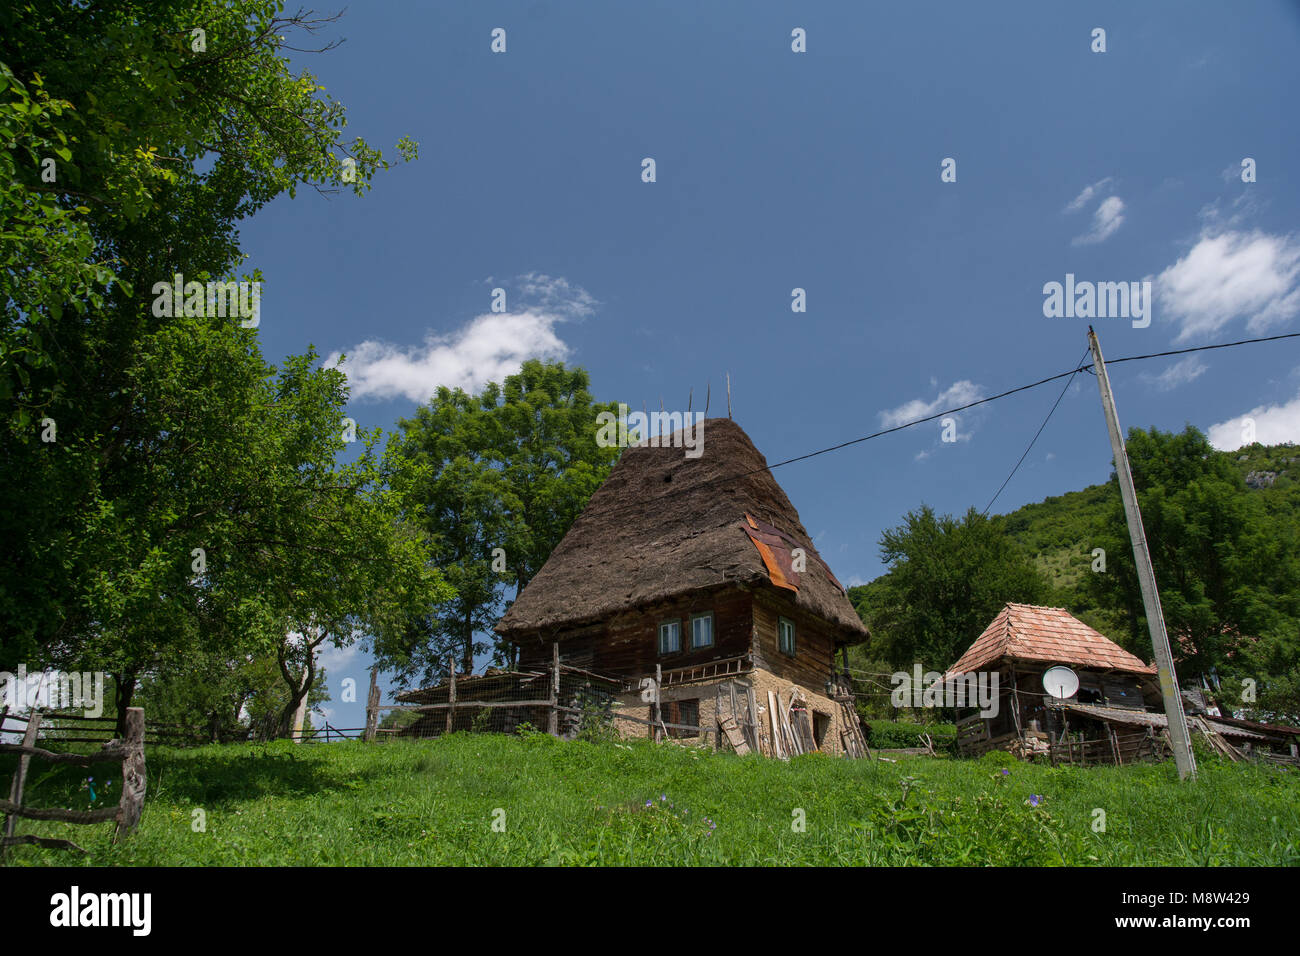 Traditional Wood House Covered With Straw In Apuseni Mountains,  Transylvania, Romania. Vernacular Architecture.